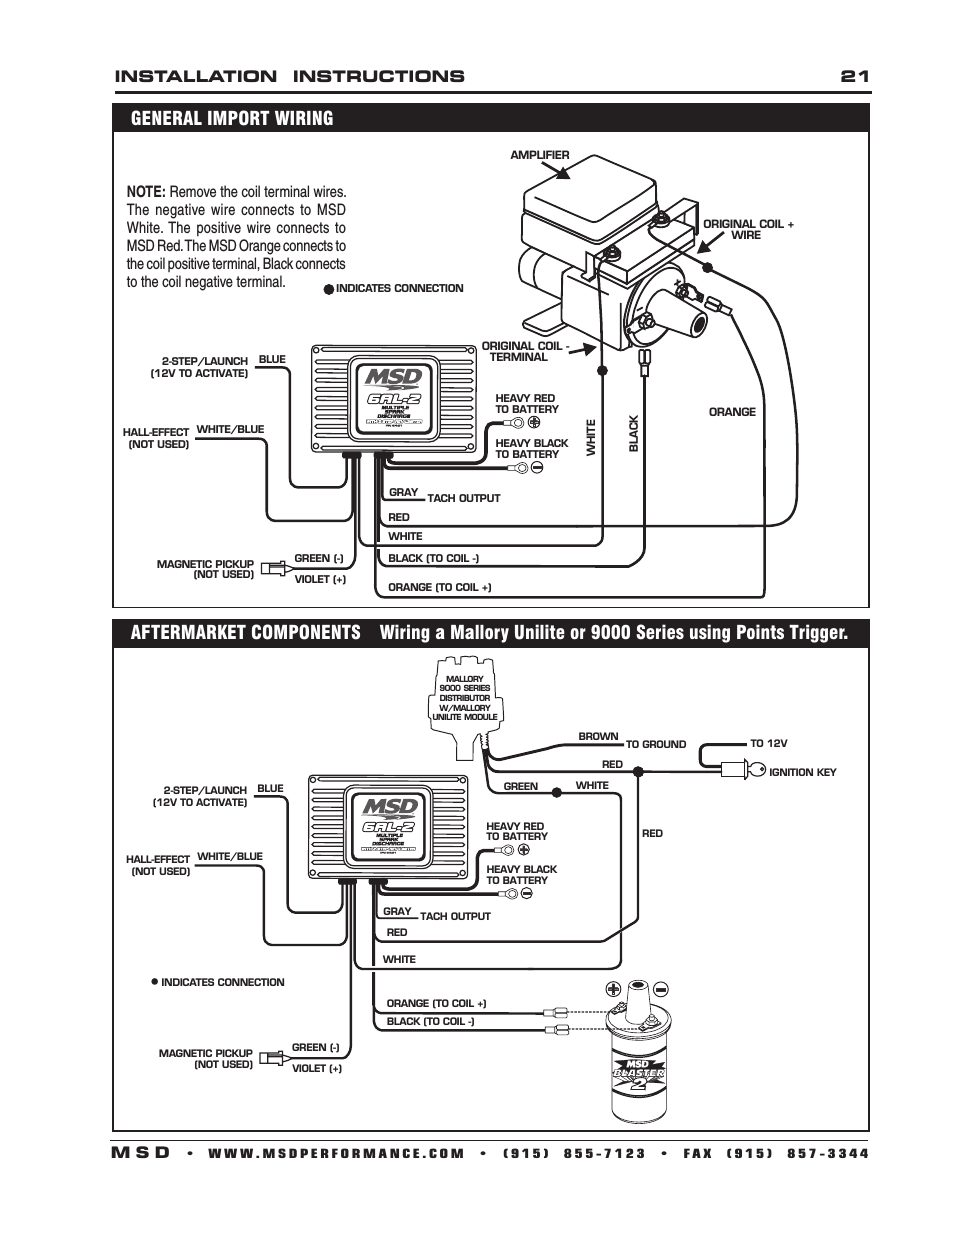 Notifier Cmx-2 Control Module Wiring Diagram